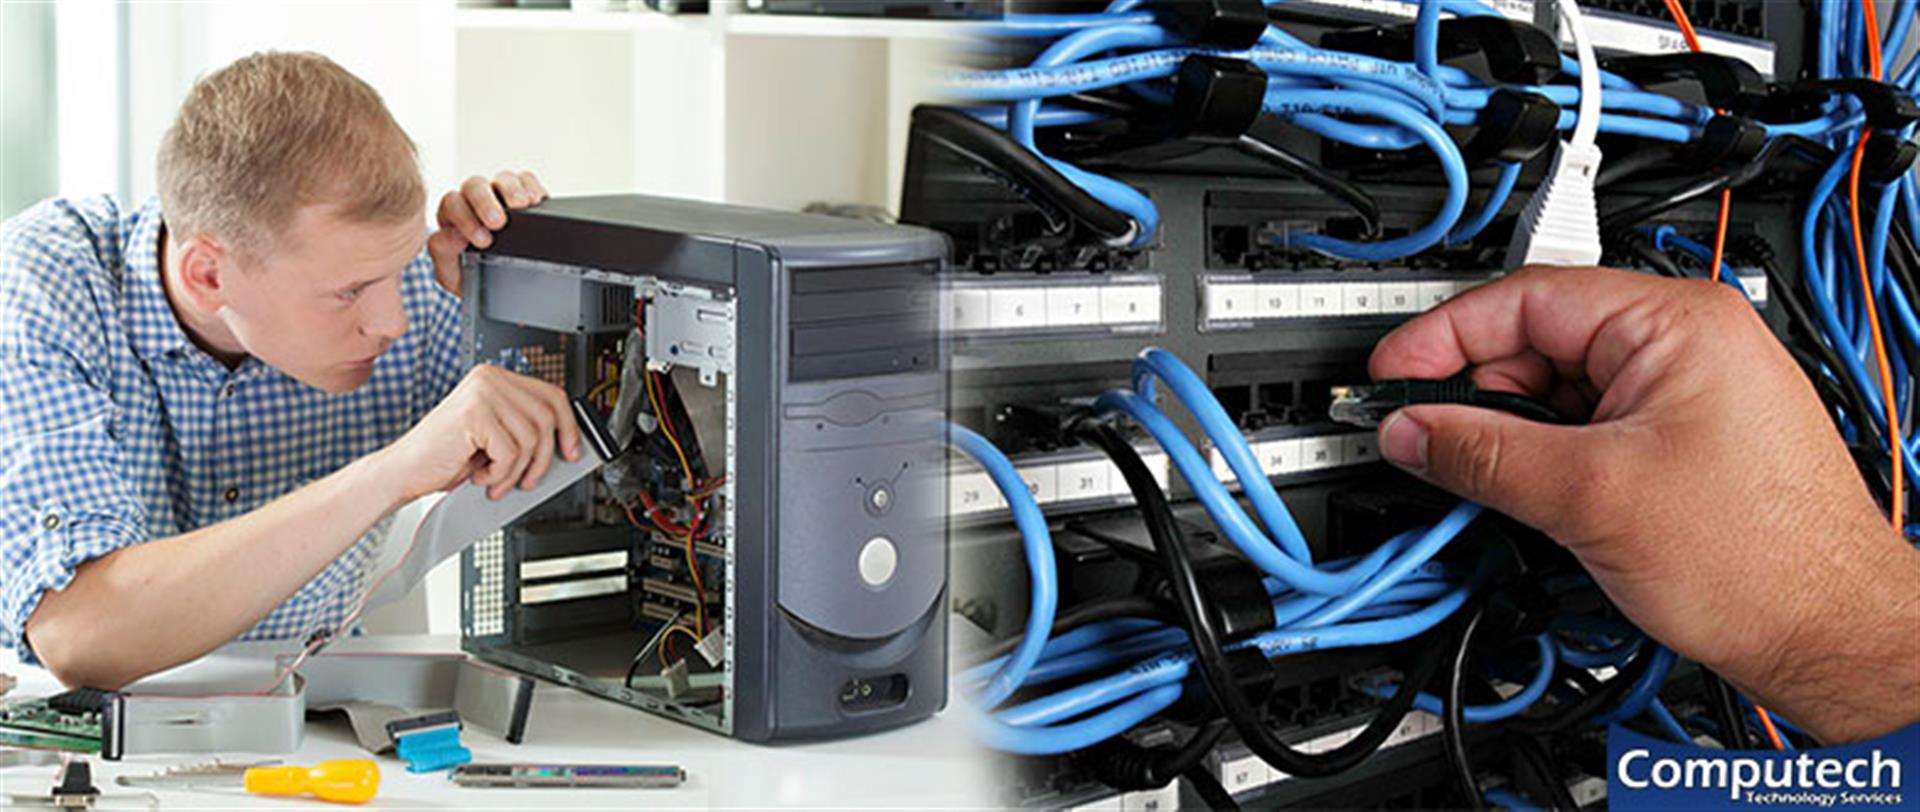 Headland Alabama On Site Computer & Printer Repairs, Networking, Voice & Data Low Voltage Cabling Services